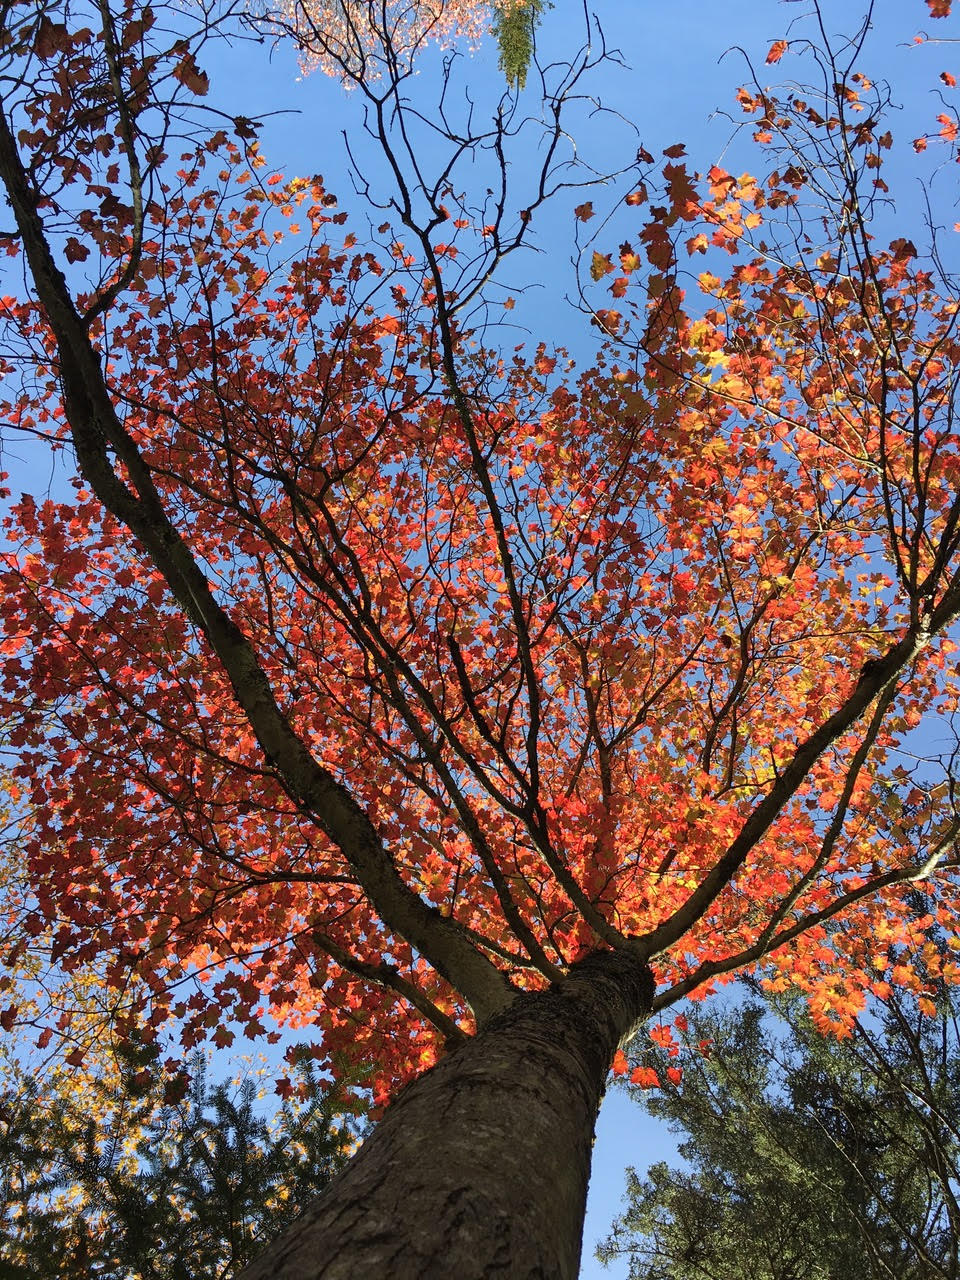 Contest Entry #25 - Red Maple Alight with Autumn - Looking up into a bright red maple tree with blue sky behind it